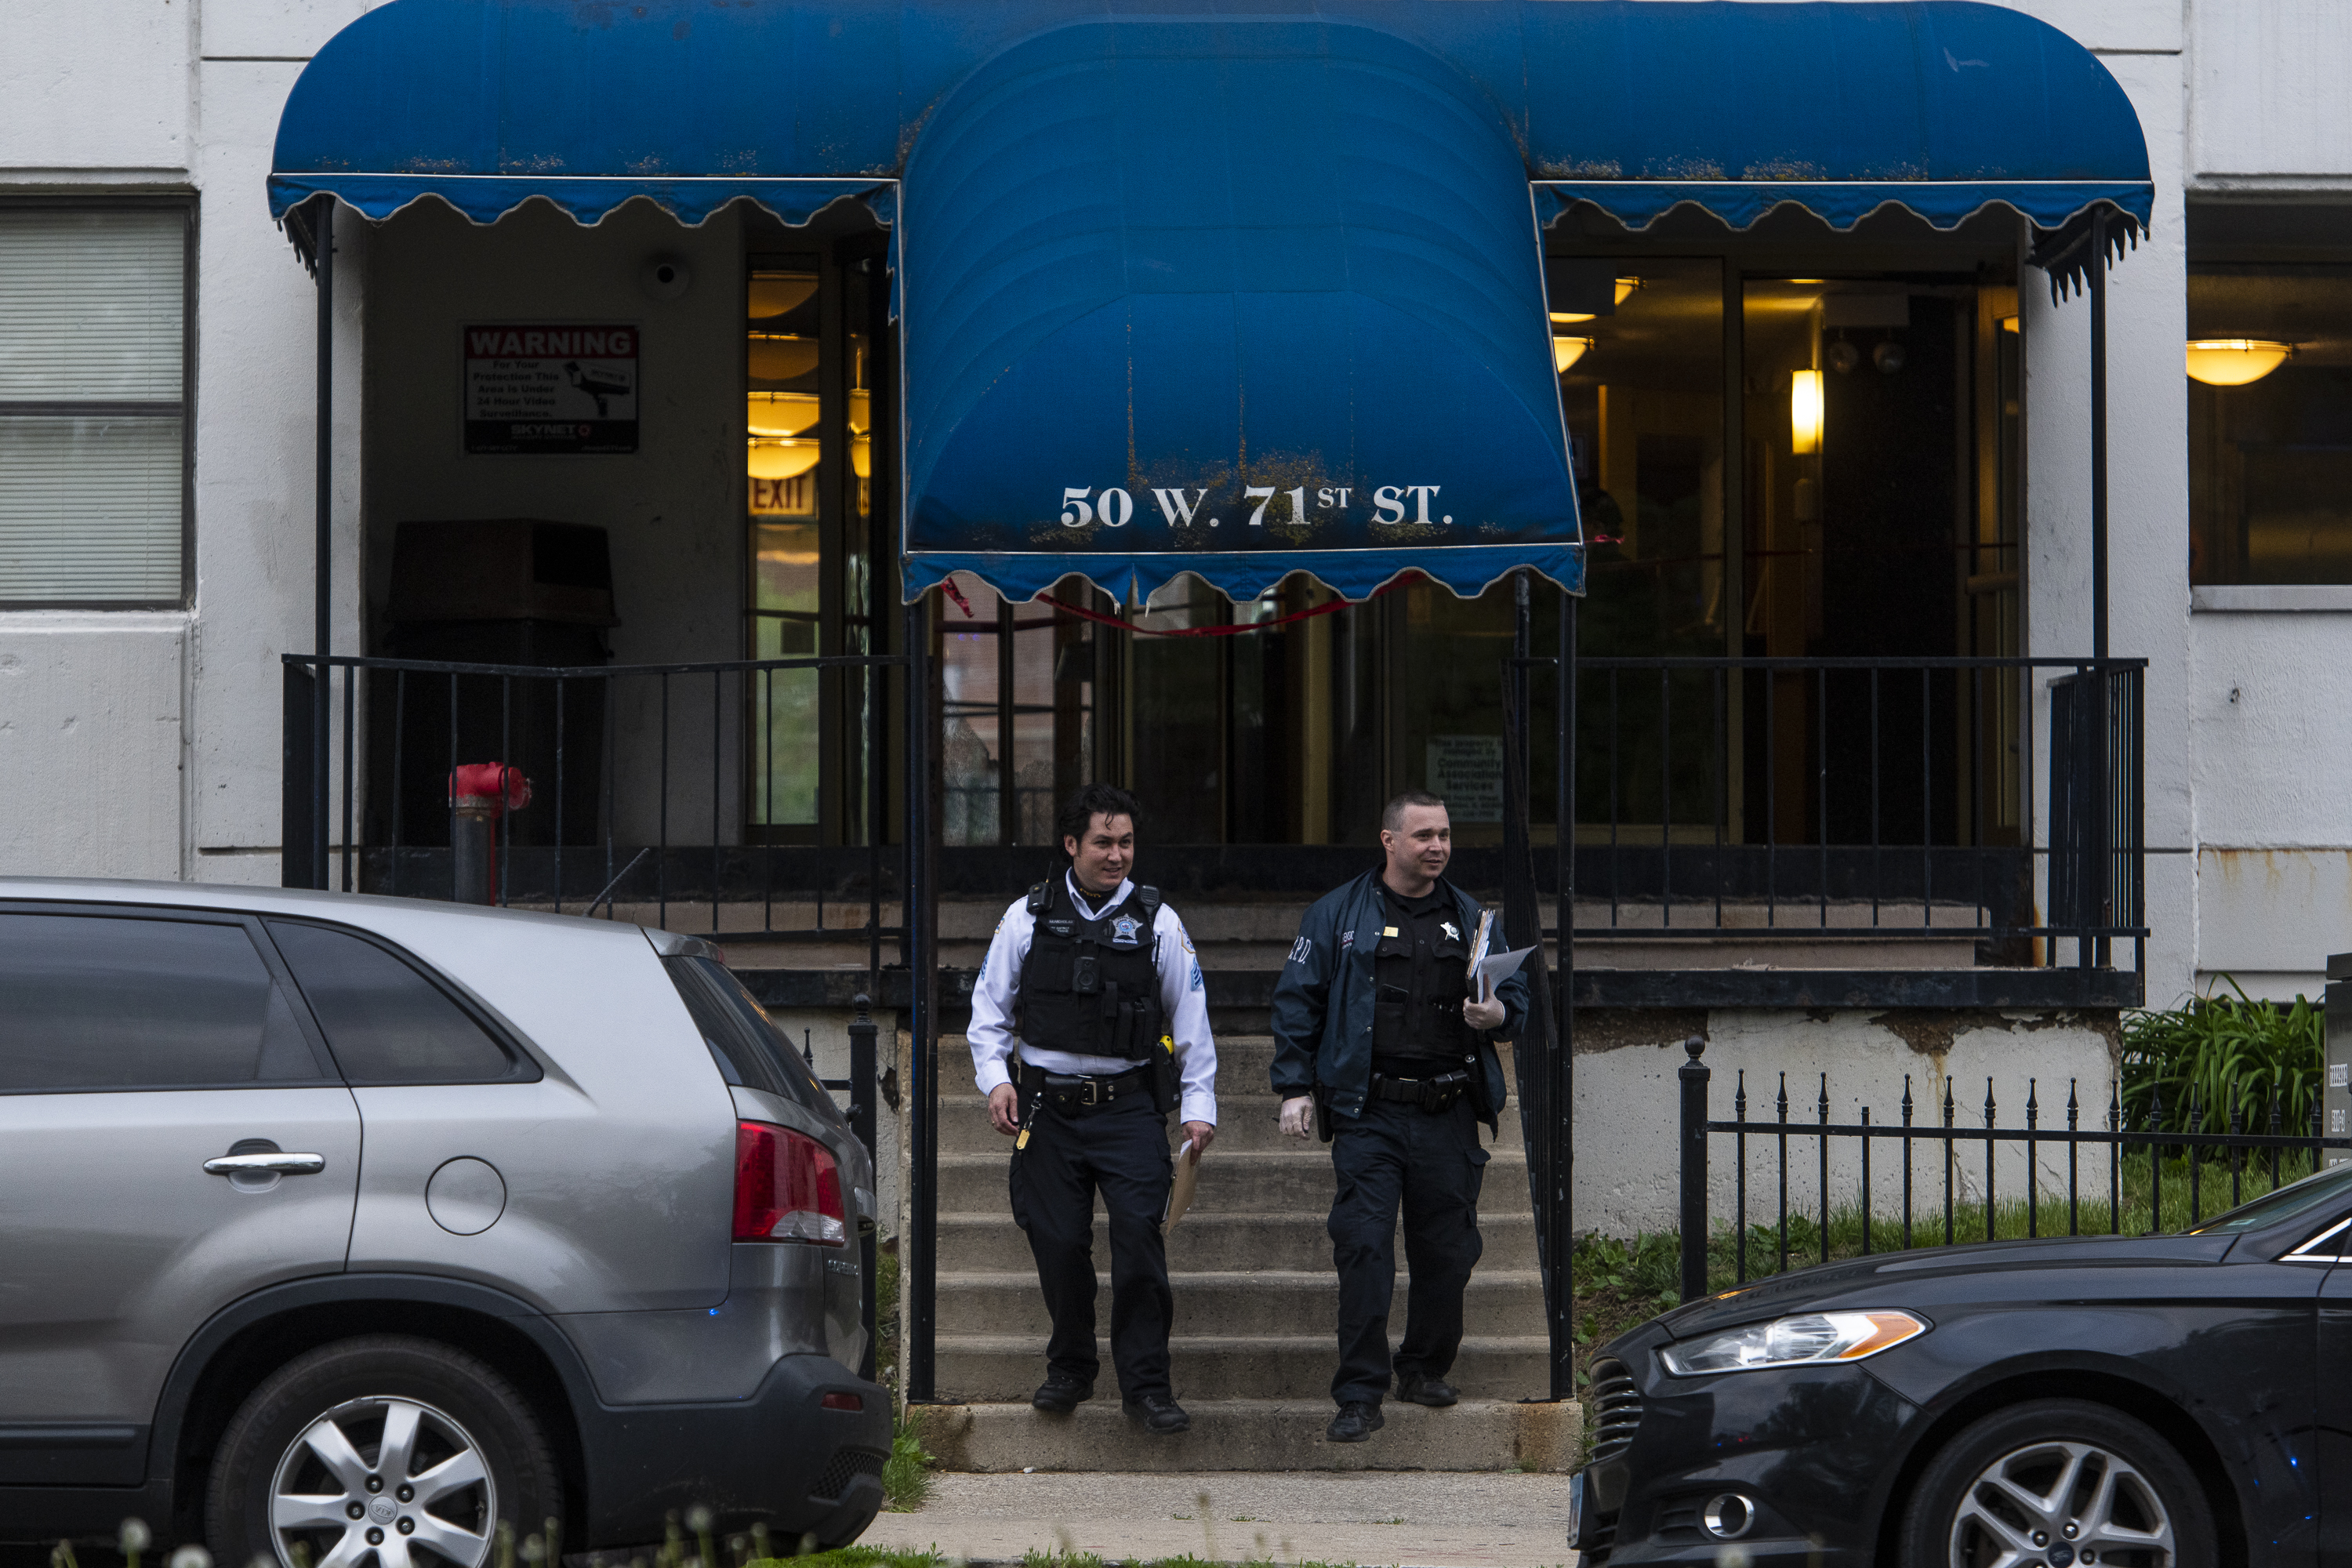 Chicago police work a scene where 2 people were shot, in the 7100 block of S Lafayette St. in the Park Manor neighborhood, Tuesday, May 4, 2021.